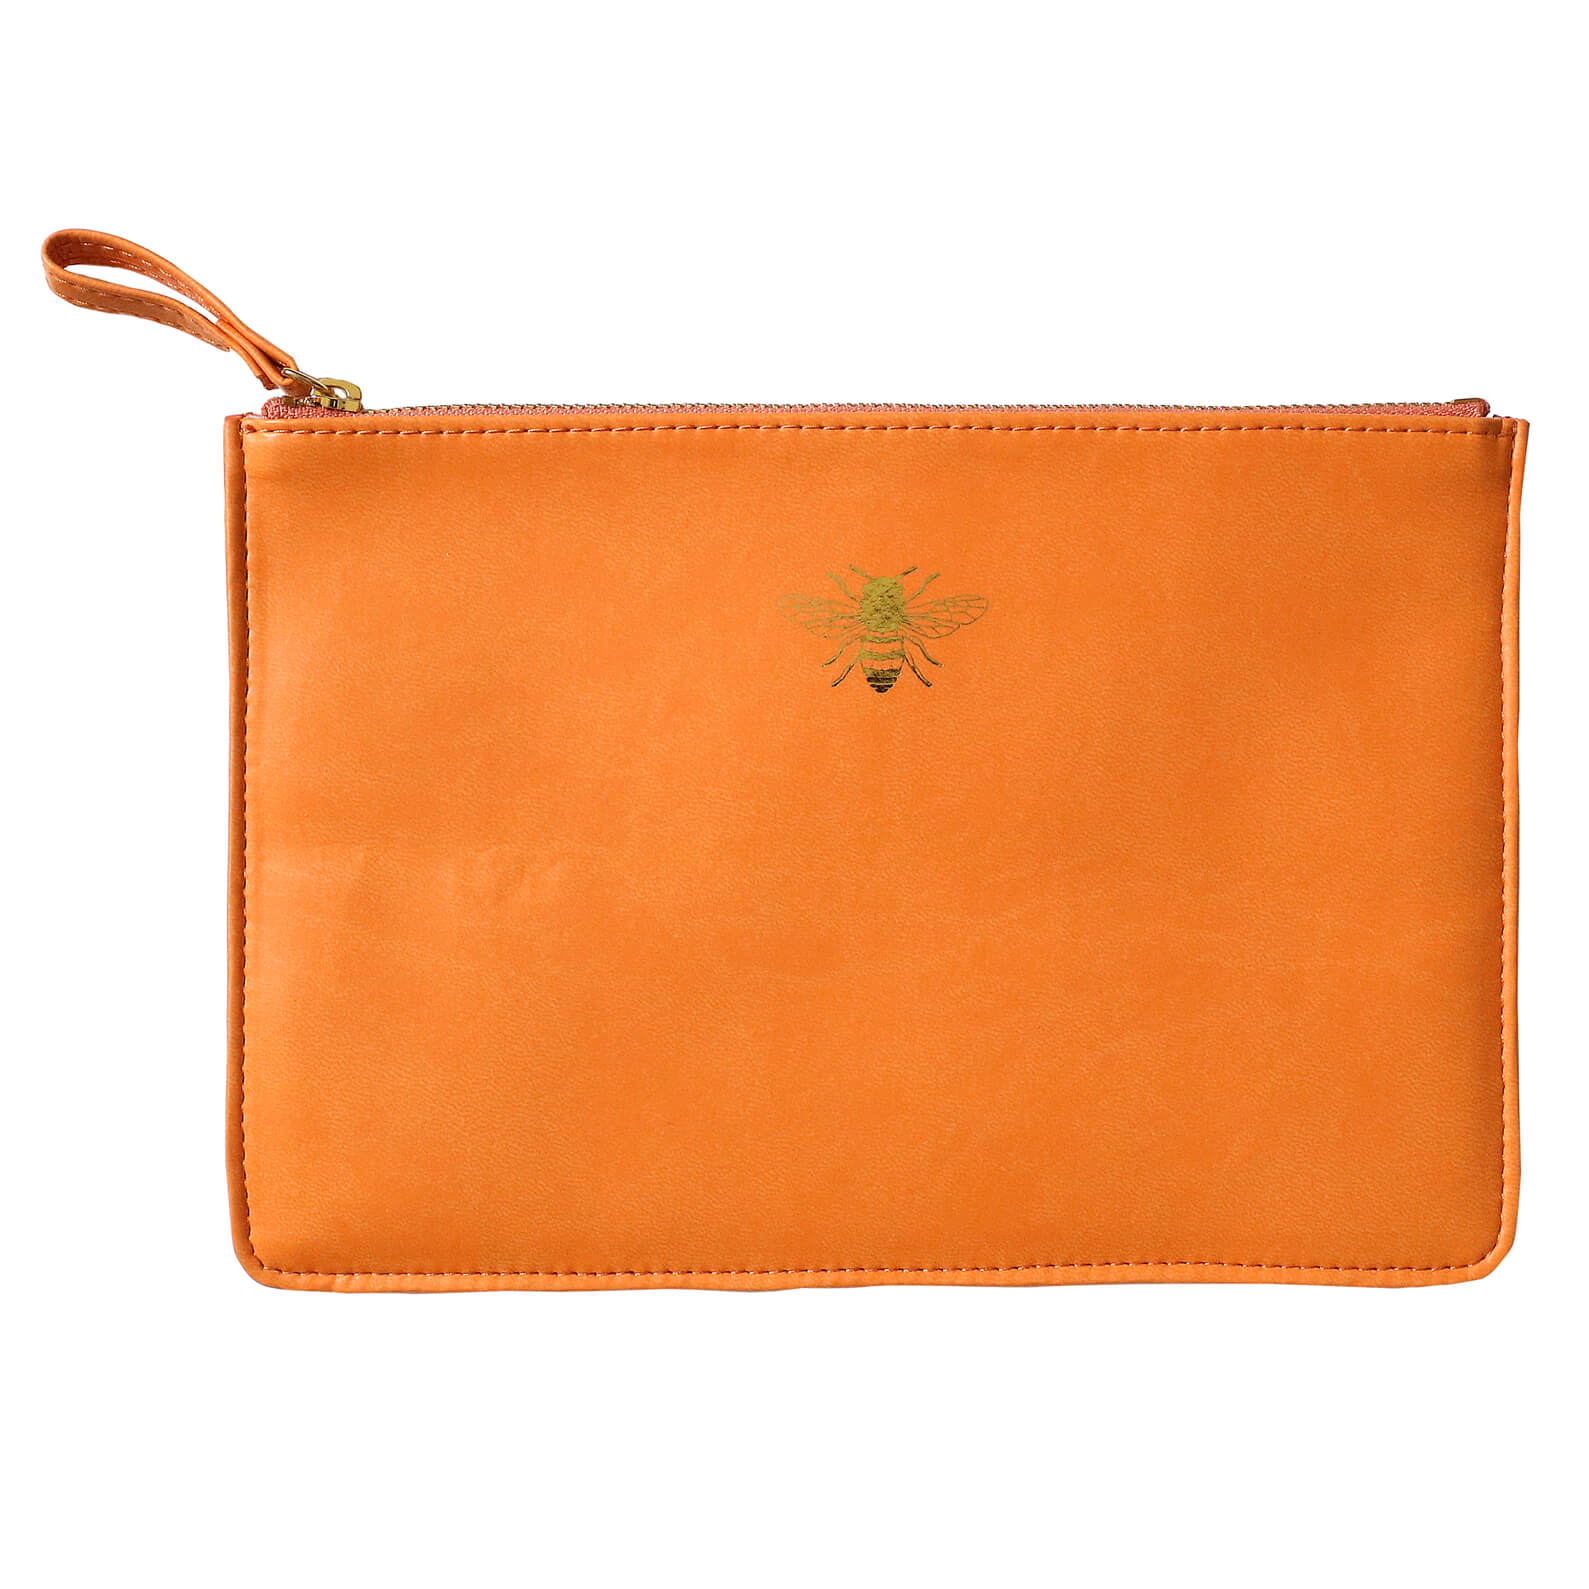 Sky + Miller Bee Pouch - Orange